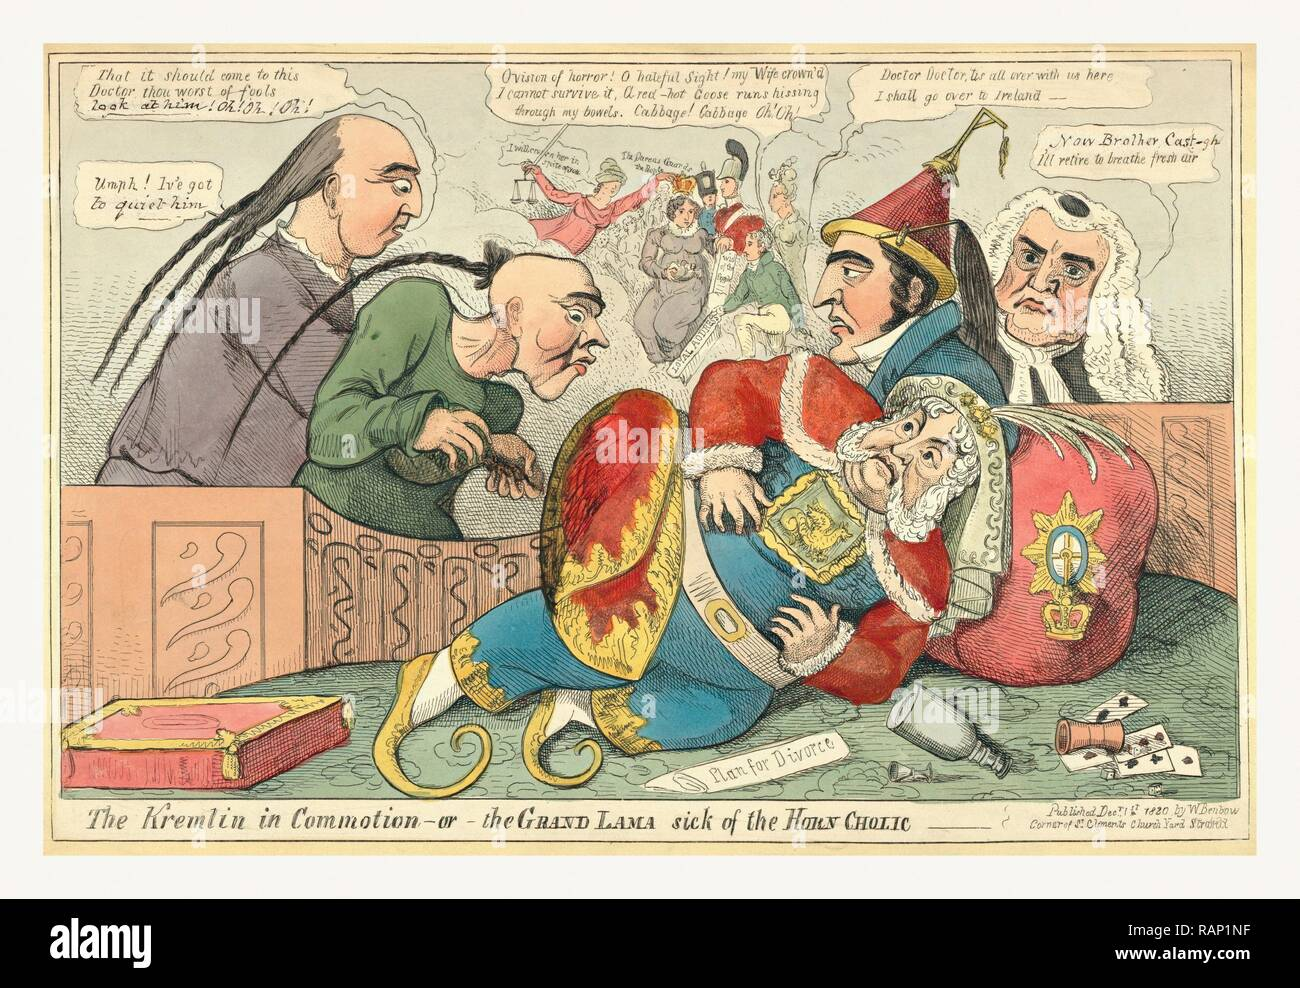 The Kremlin in commotion or the Grand Lama sick of the horn cholic, 1820, King George IV fallen to the floor, he reimagined - Stock Image